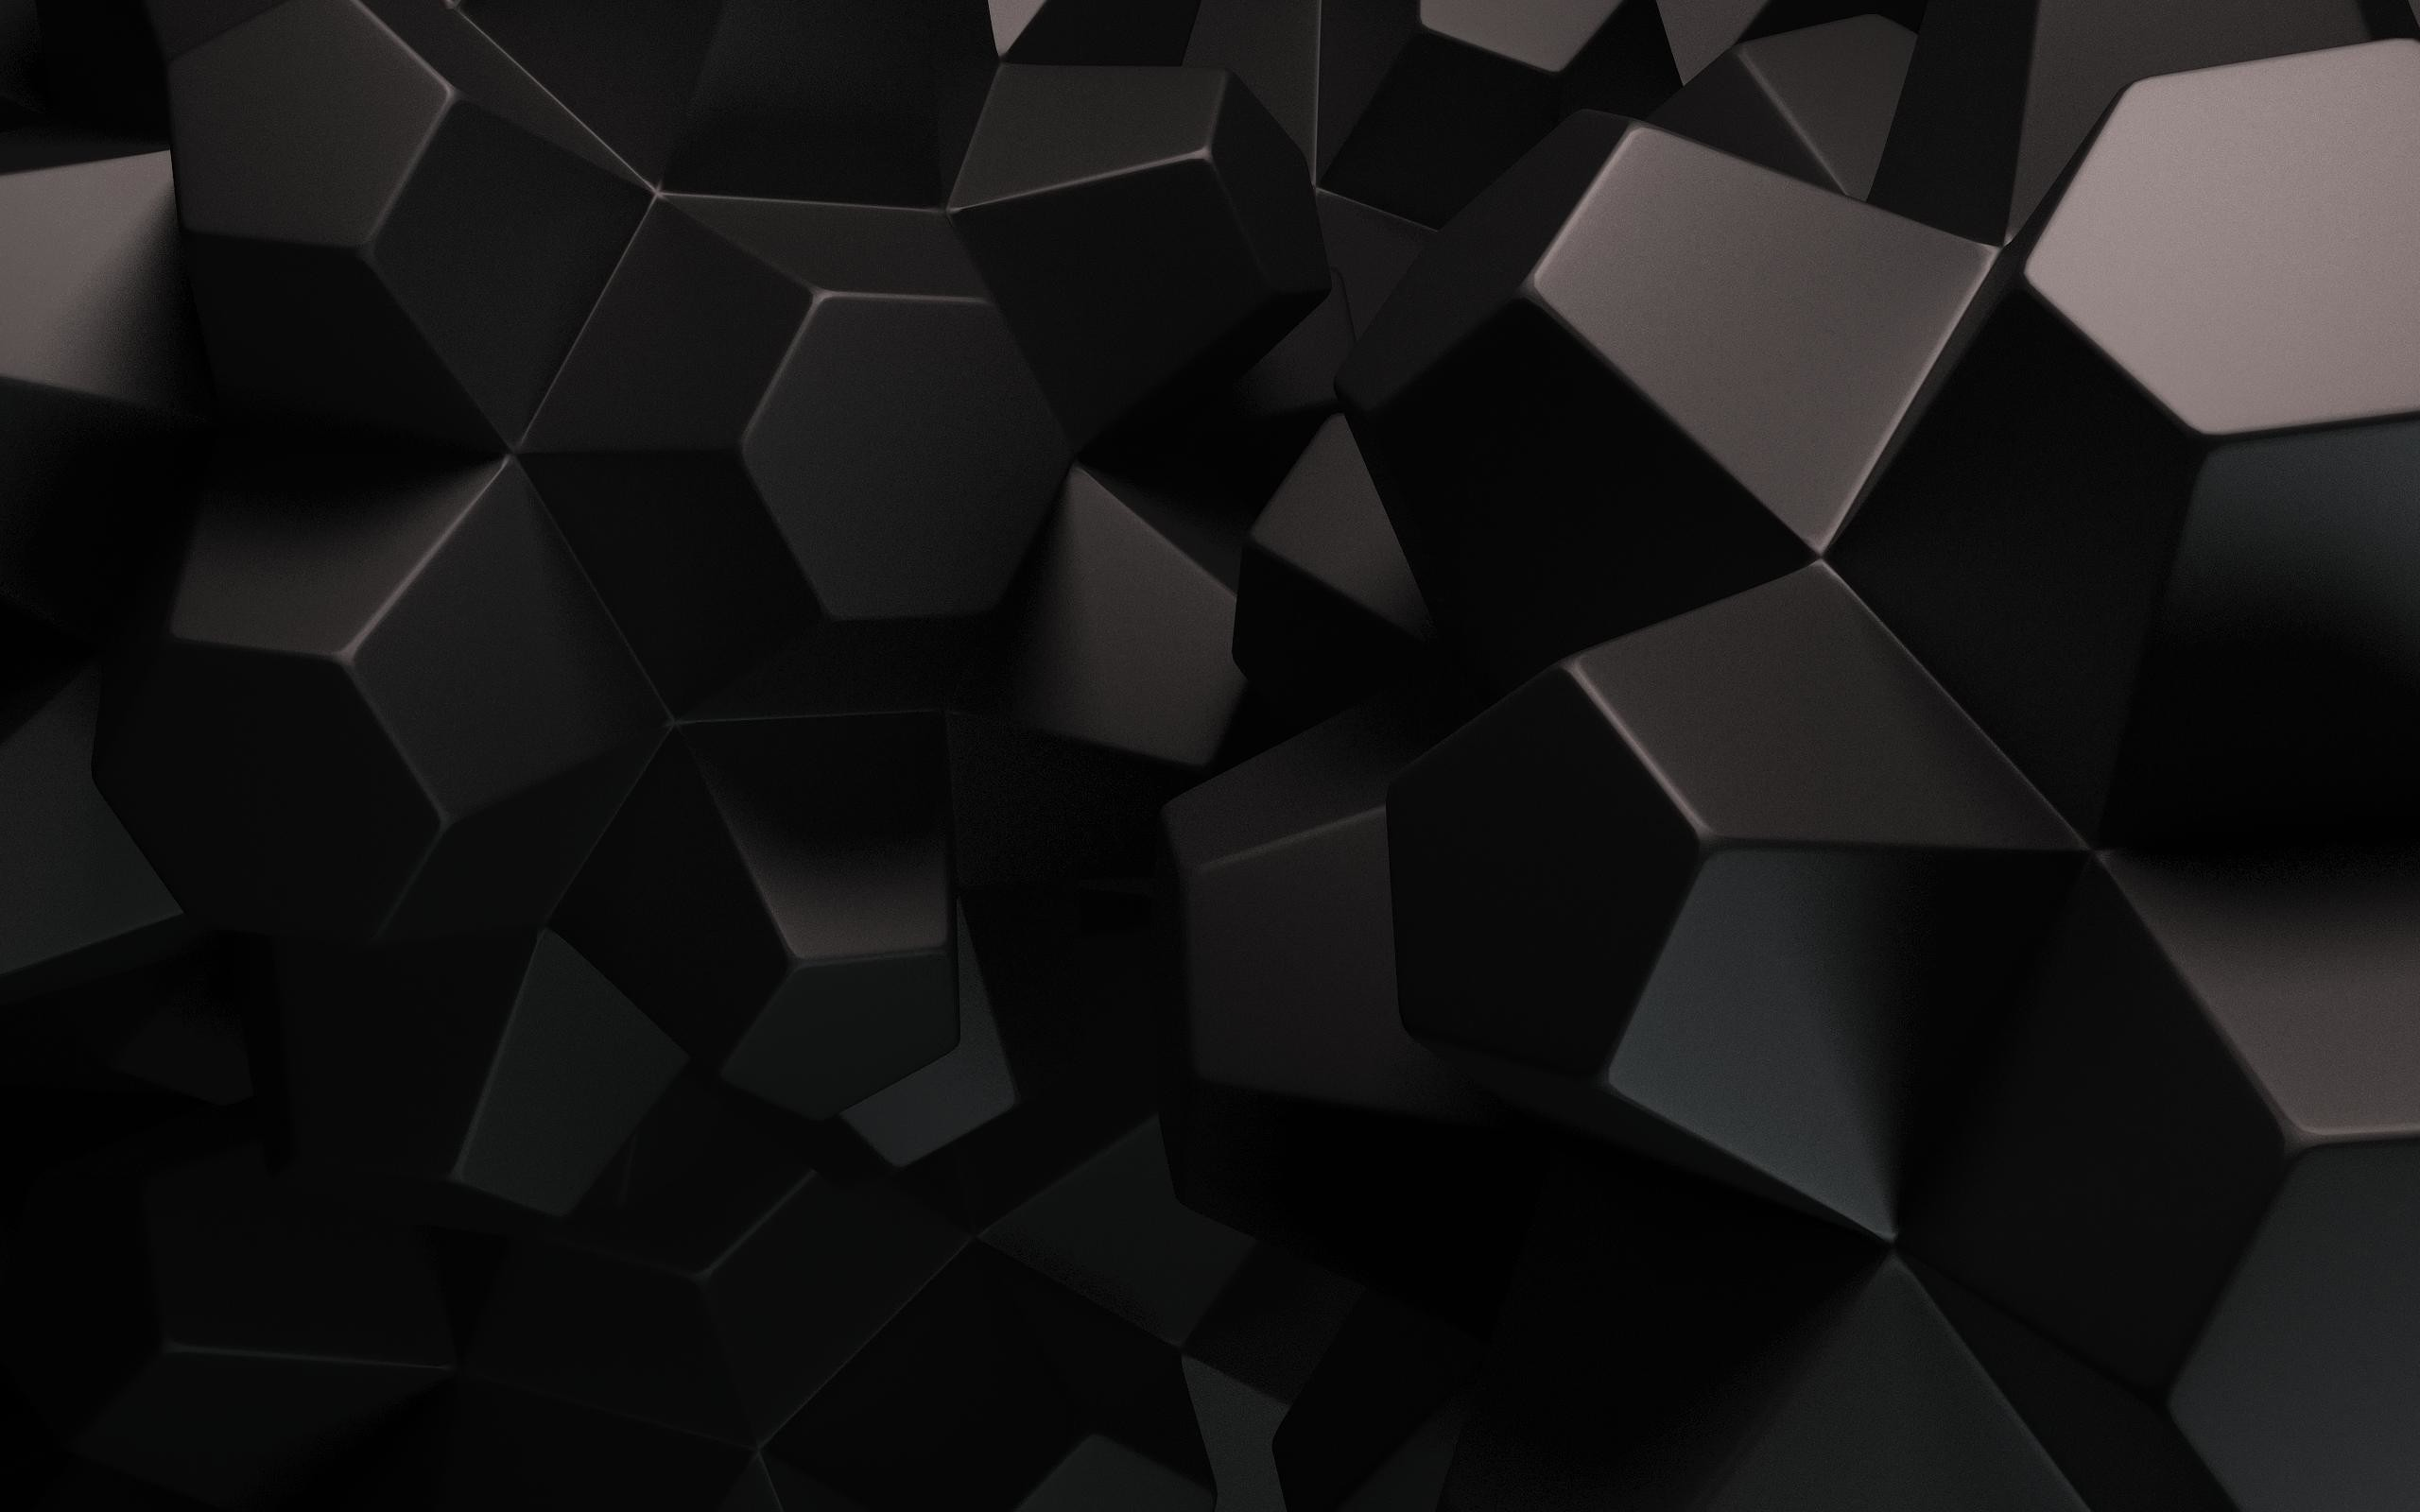 2560x1600 Dark Color 3D Chocolate Pieces Abstract